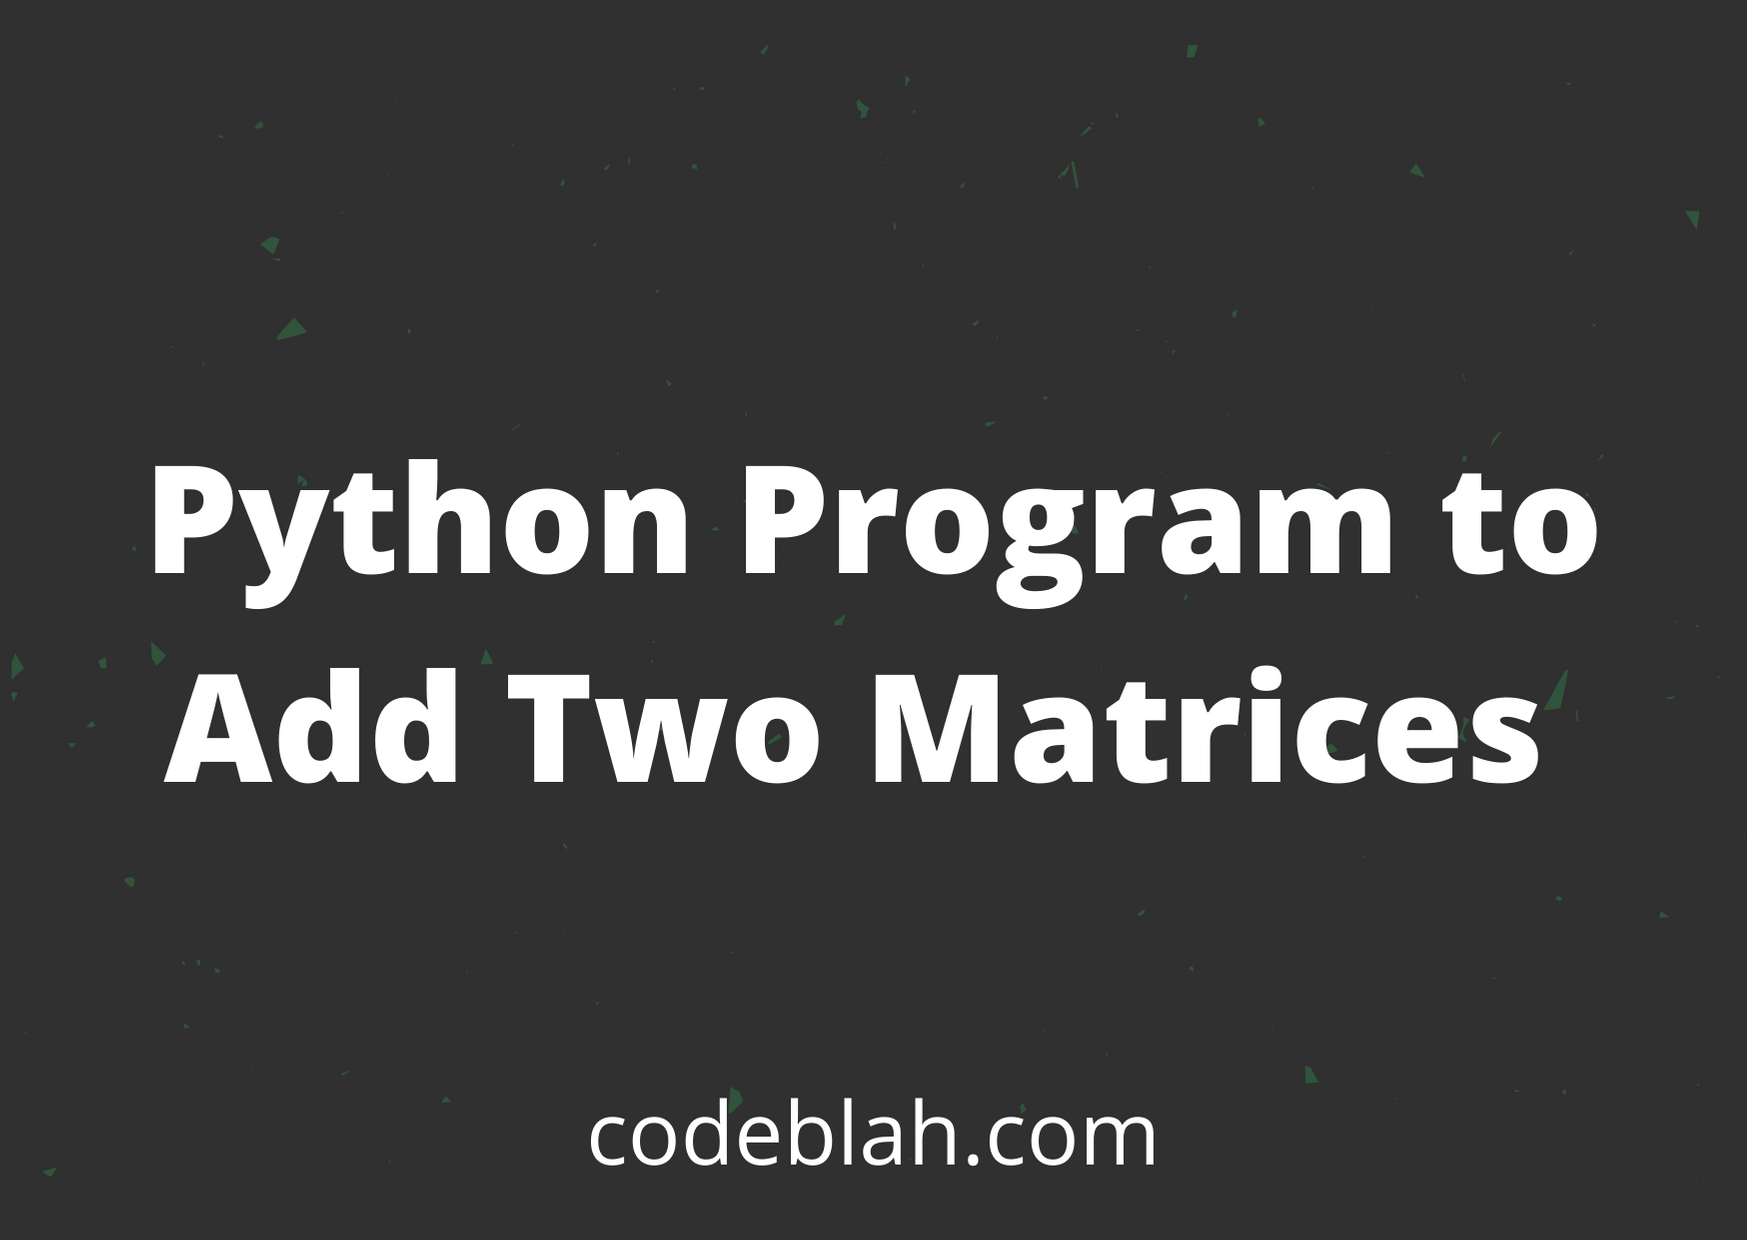 Python Program to Add Two Matrices